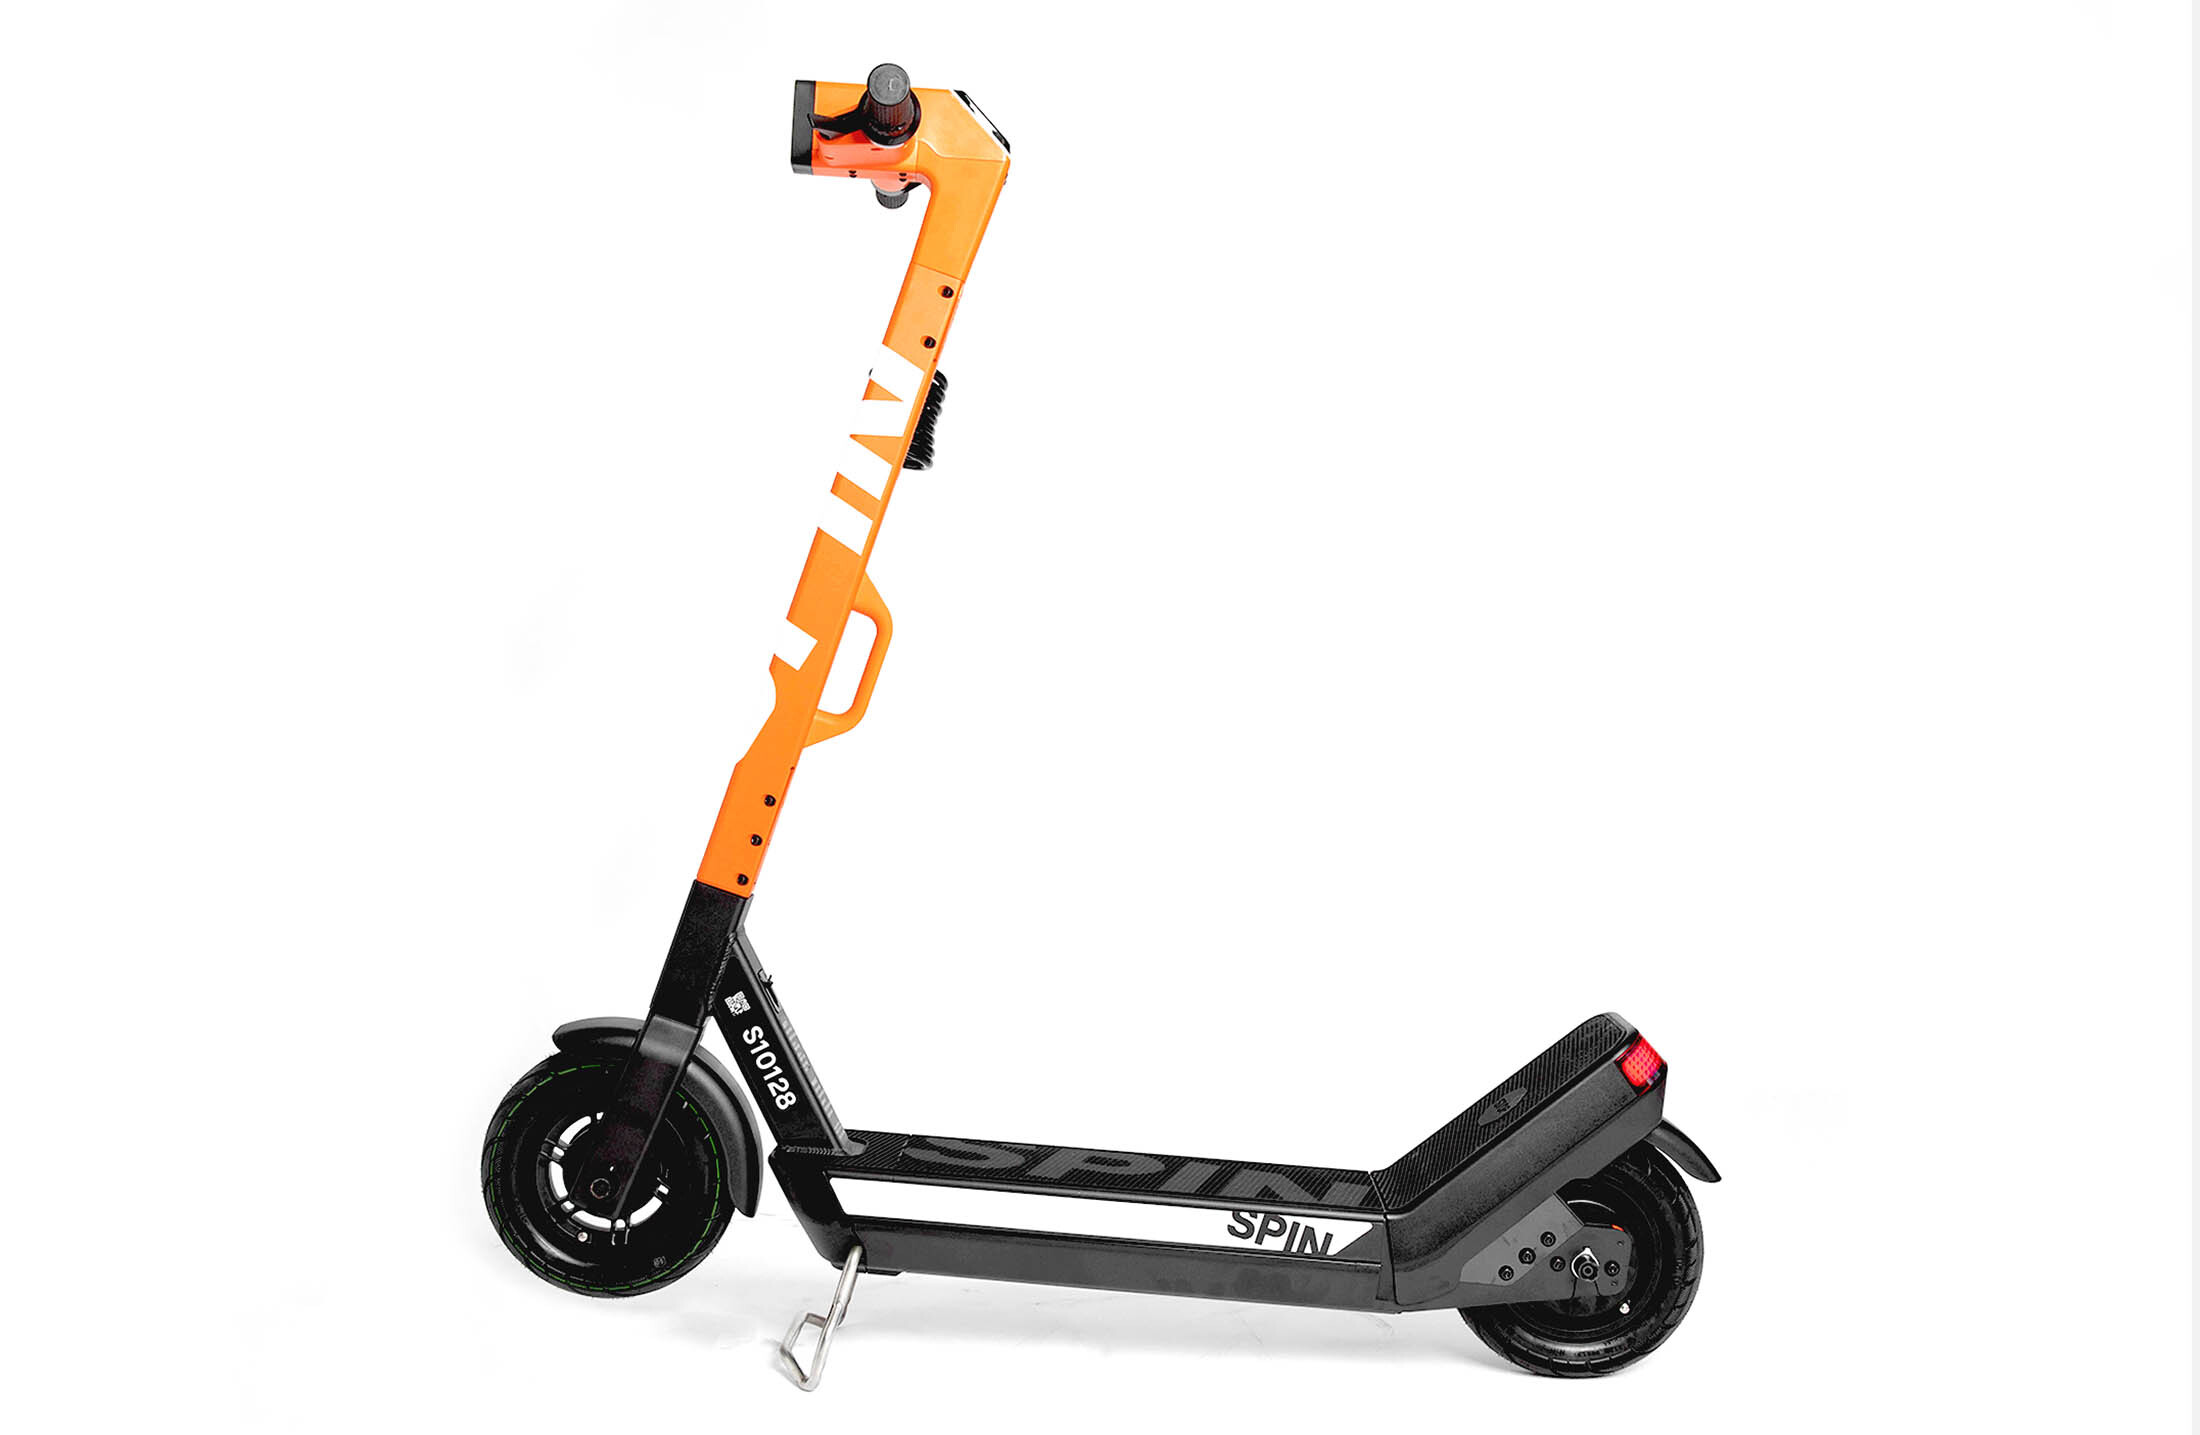 Spin scooter displayed against a white background.